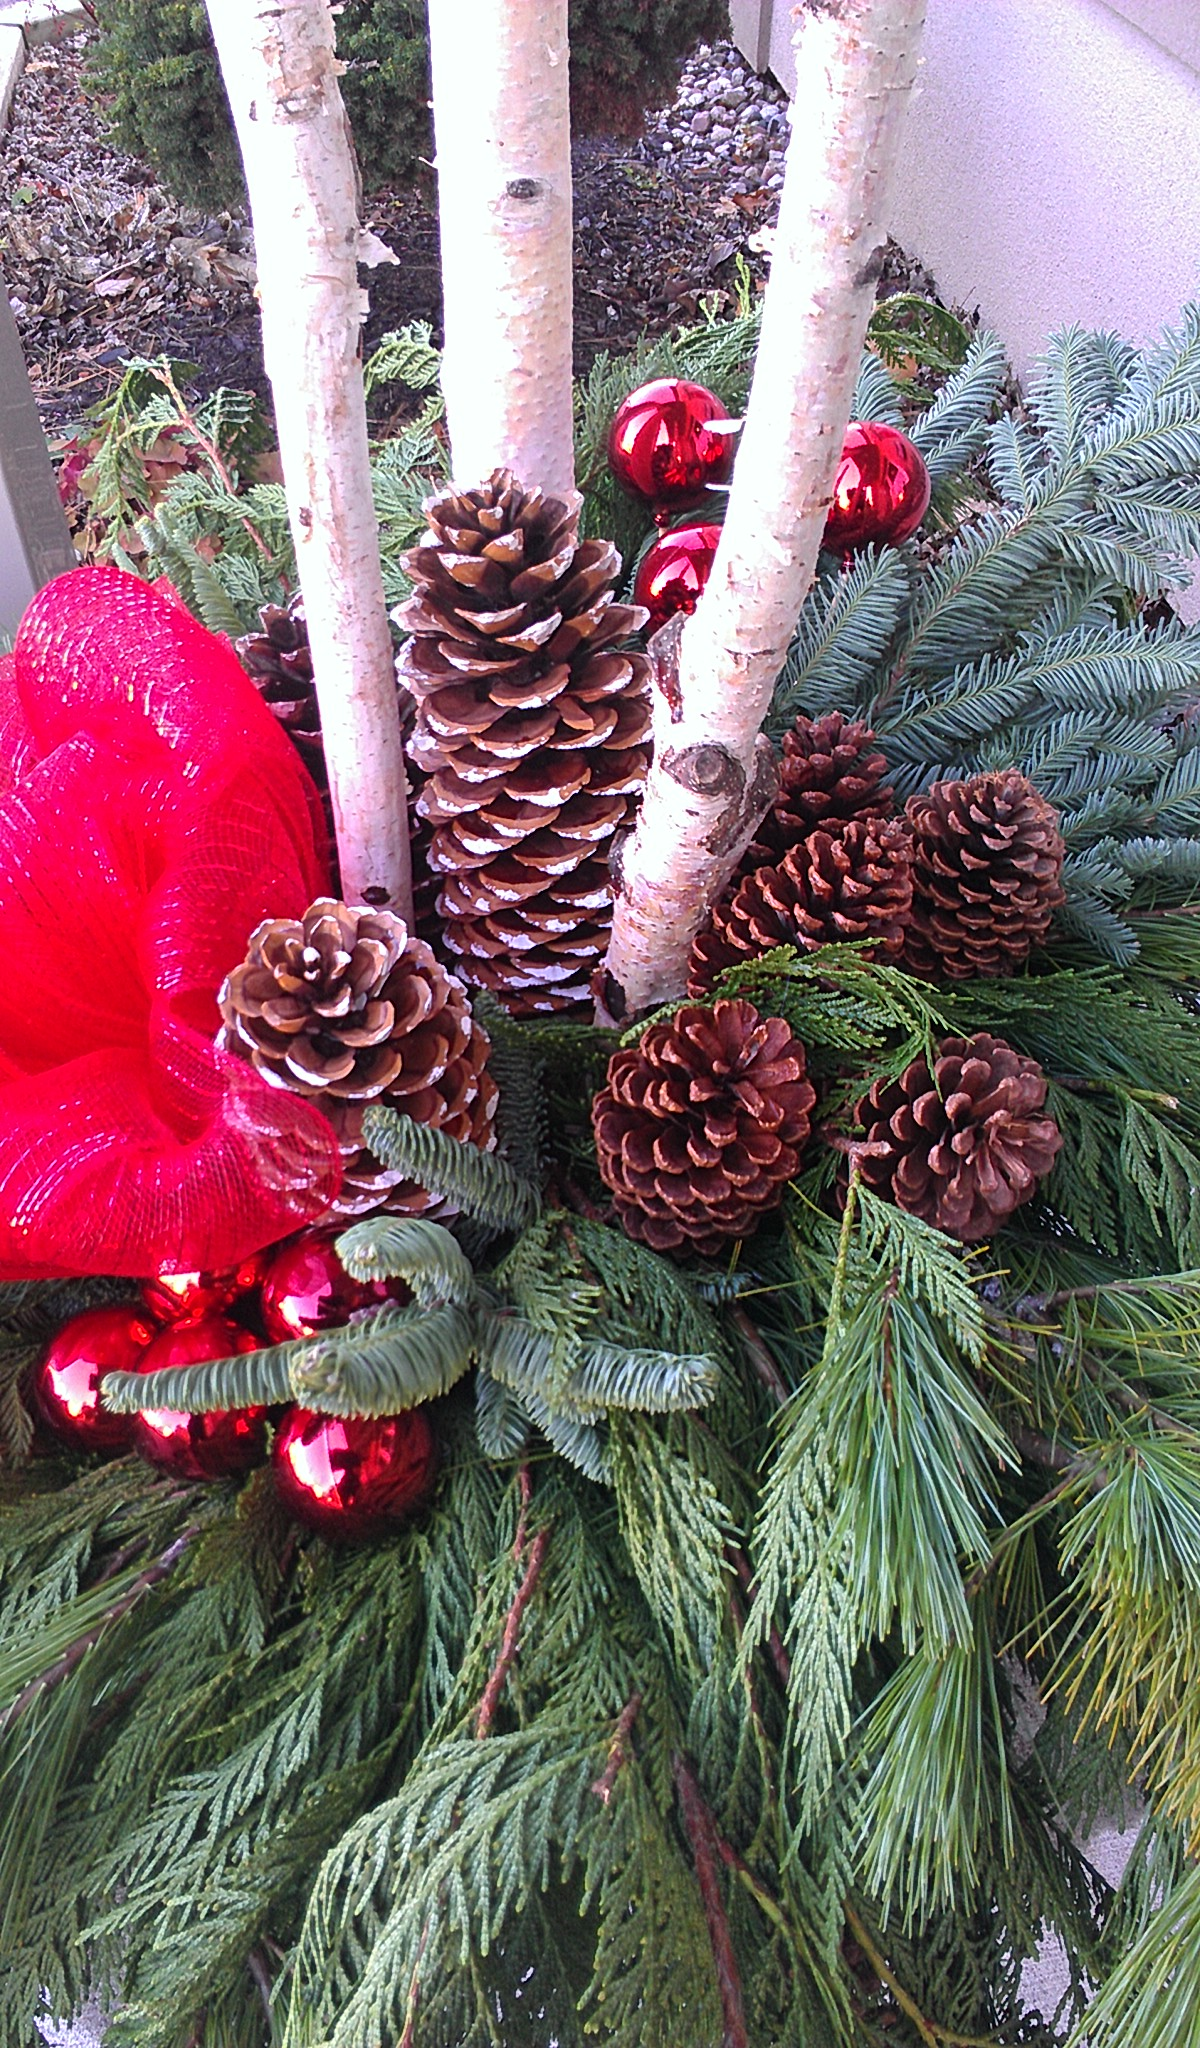 Pine, monster pine cones, and a red bow.